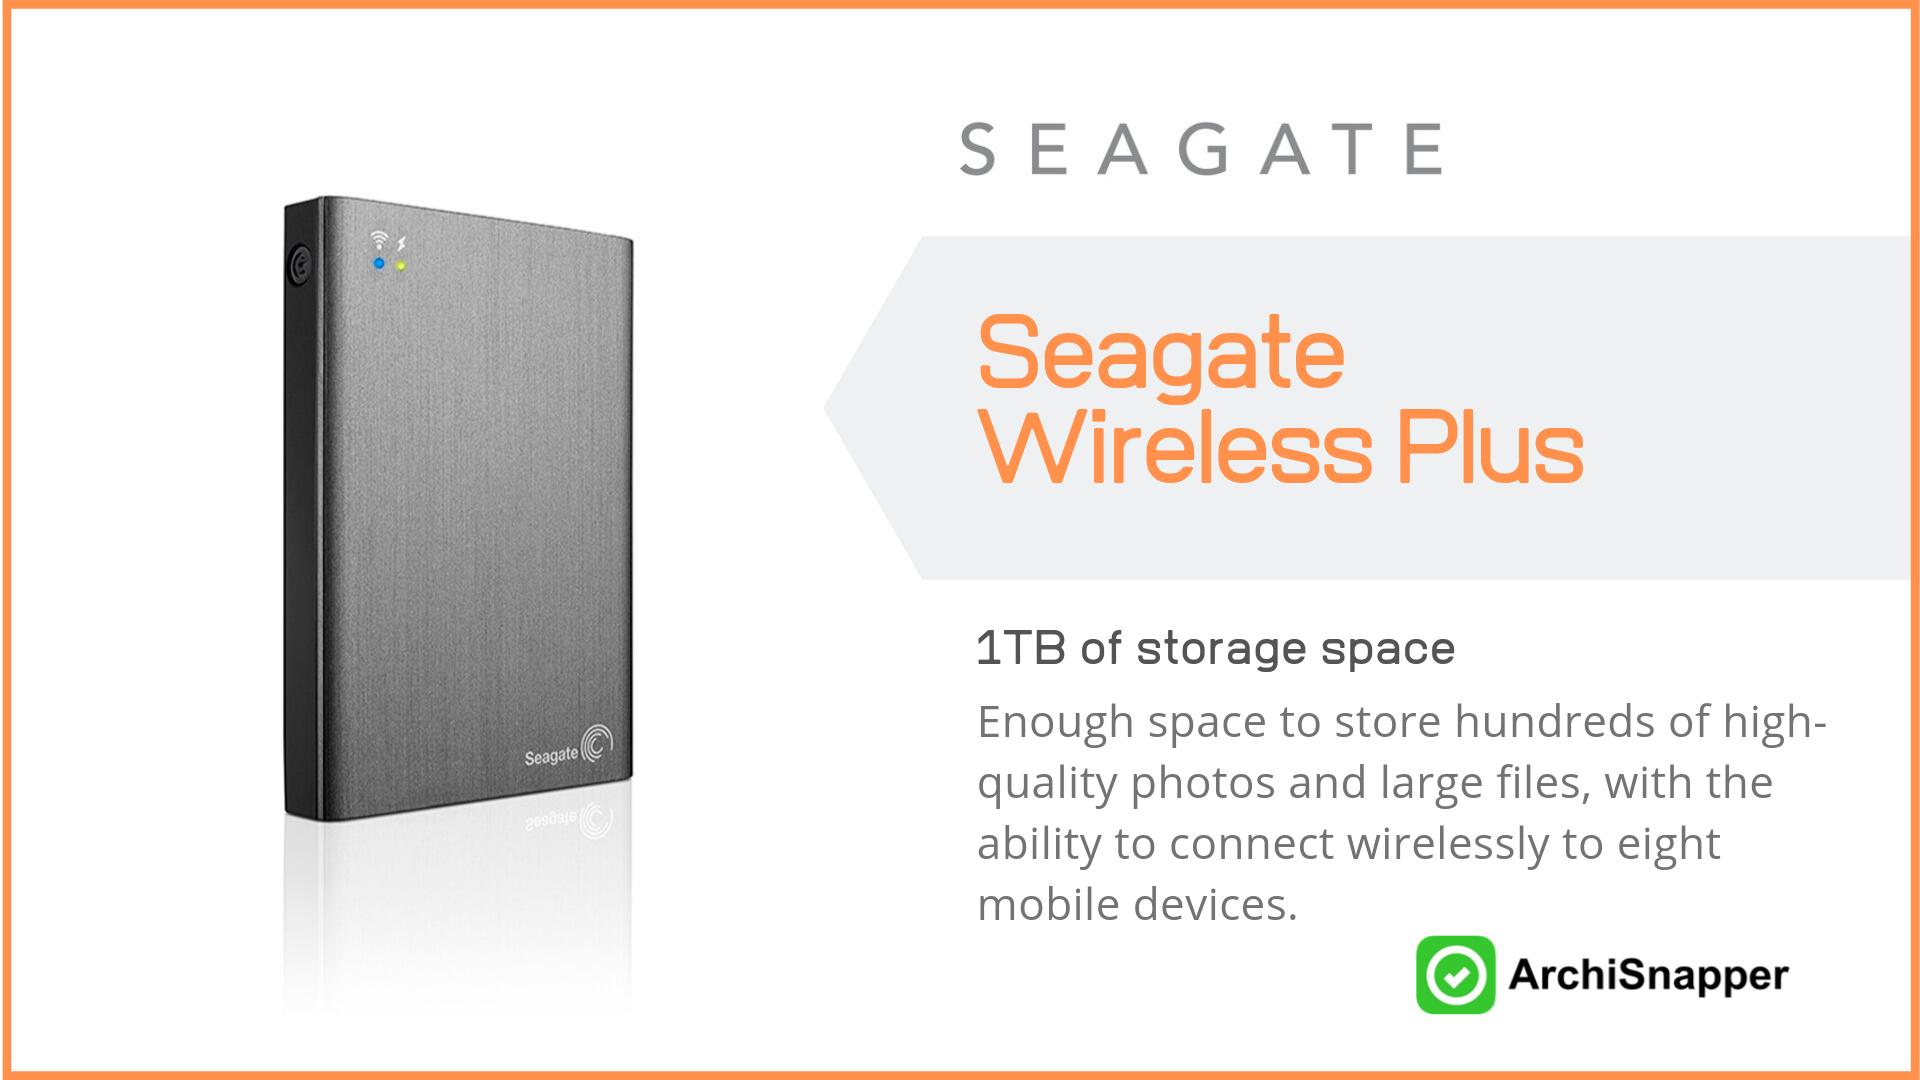 Seagate Wireless | List of the 15 must-have tech tools and accessories ideal for architects presented by Archisnapper